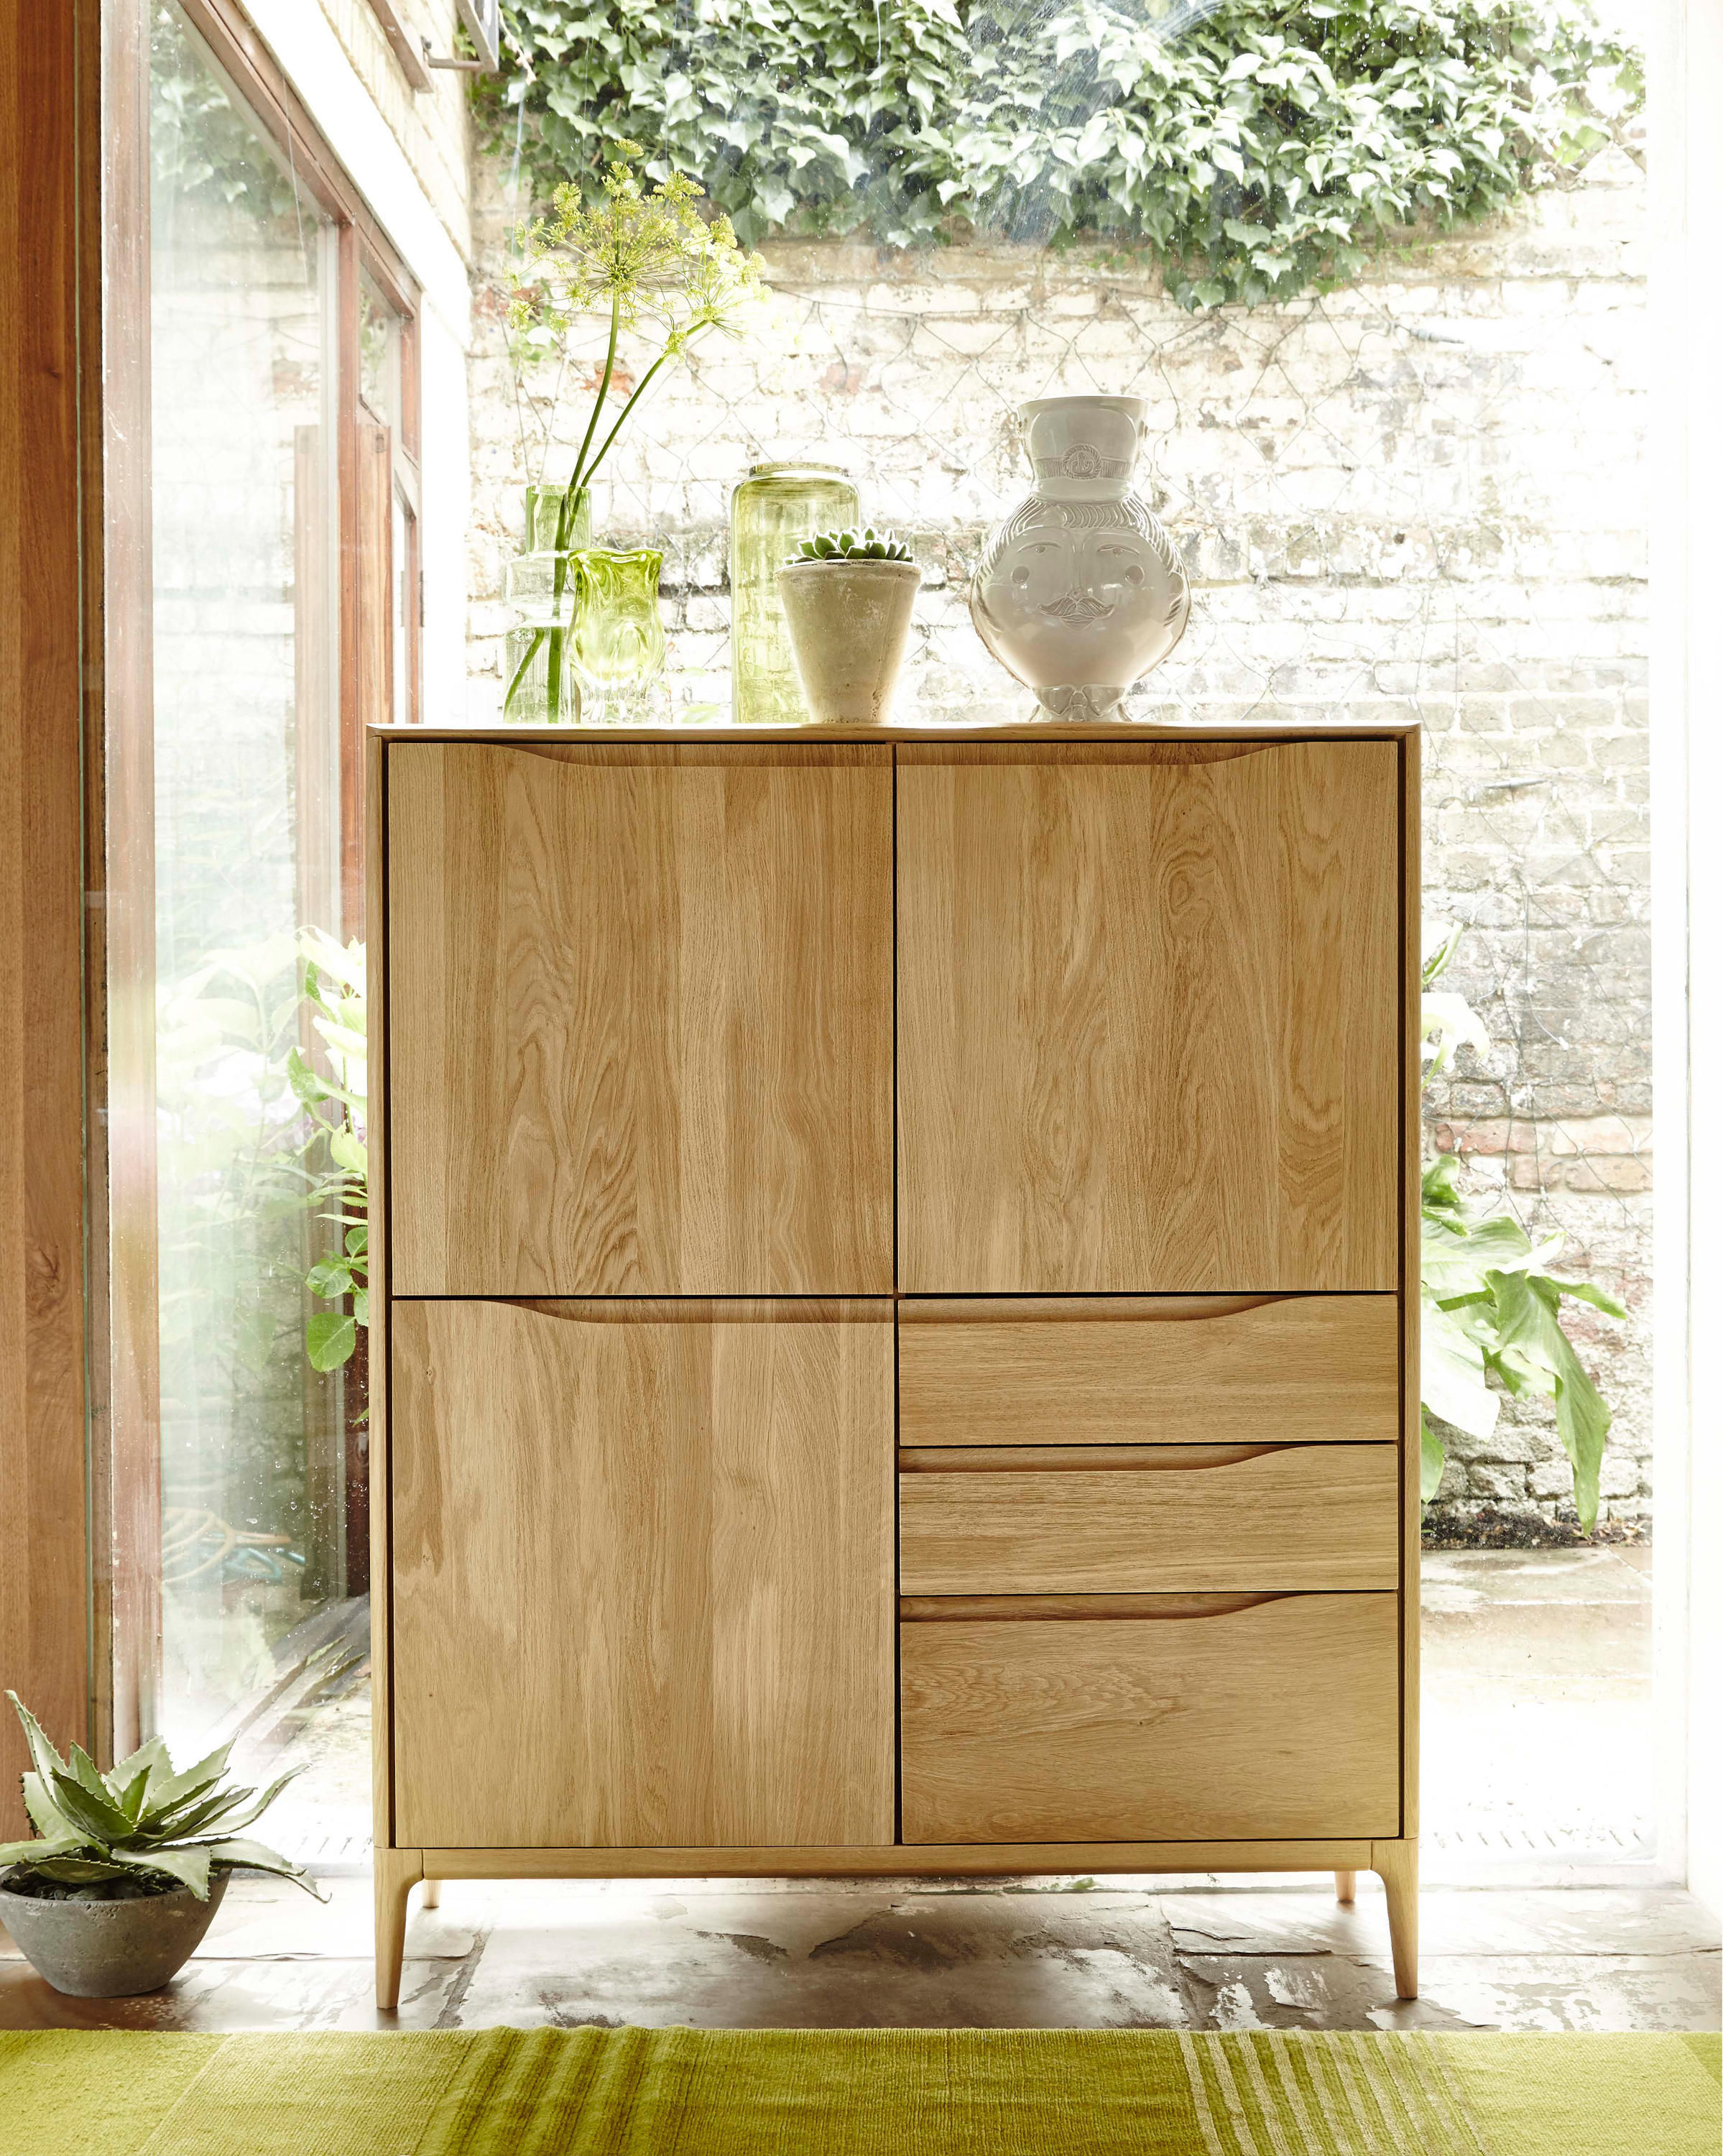 Romana lamp table side tables from ercol architonic romana lamp table by ercol aloadofball Images